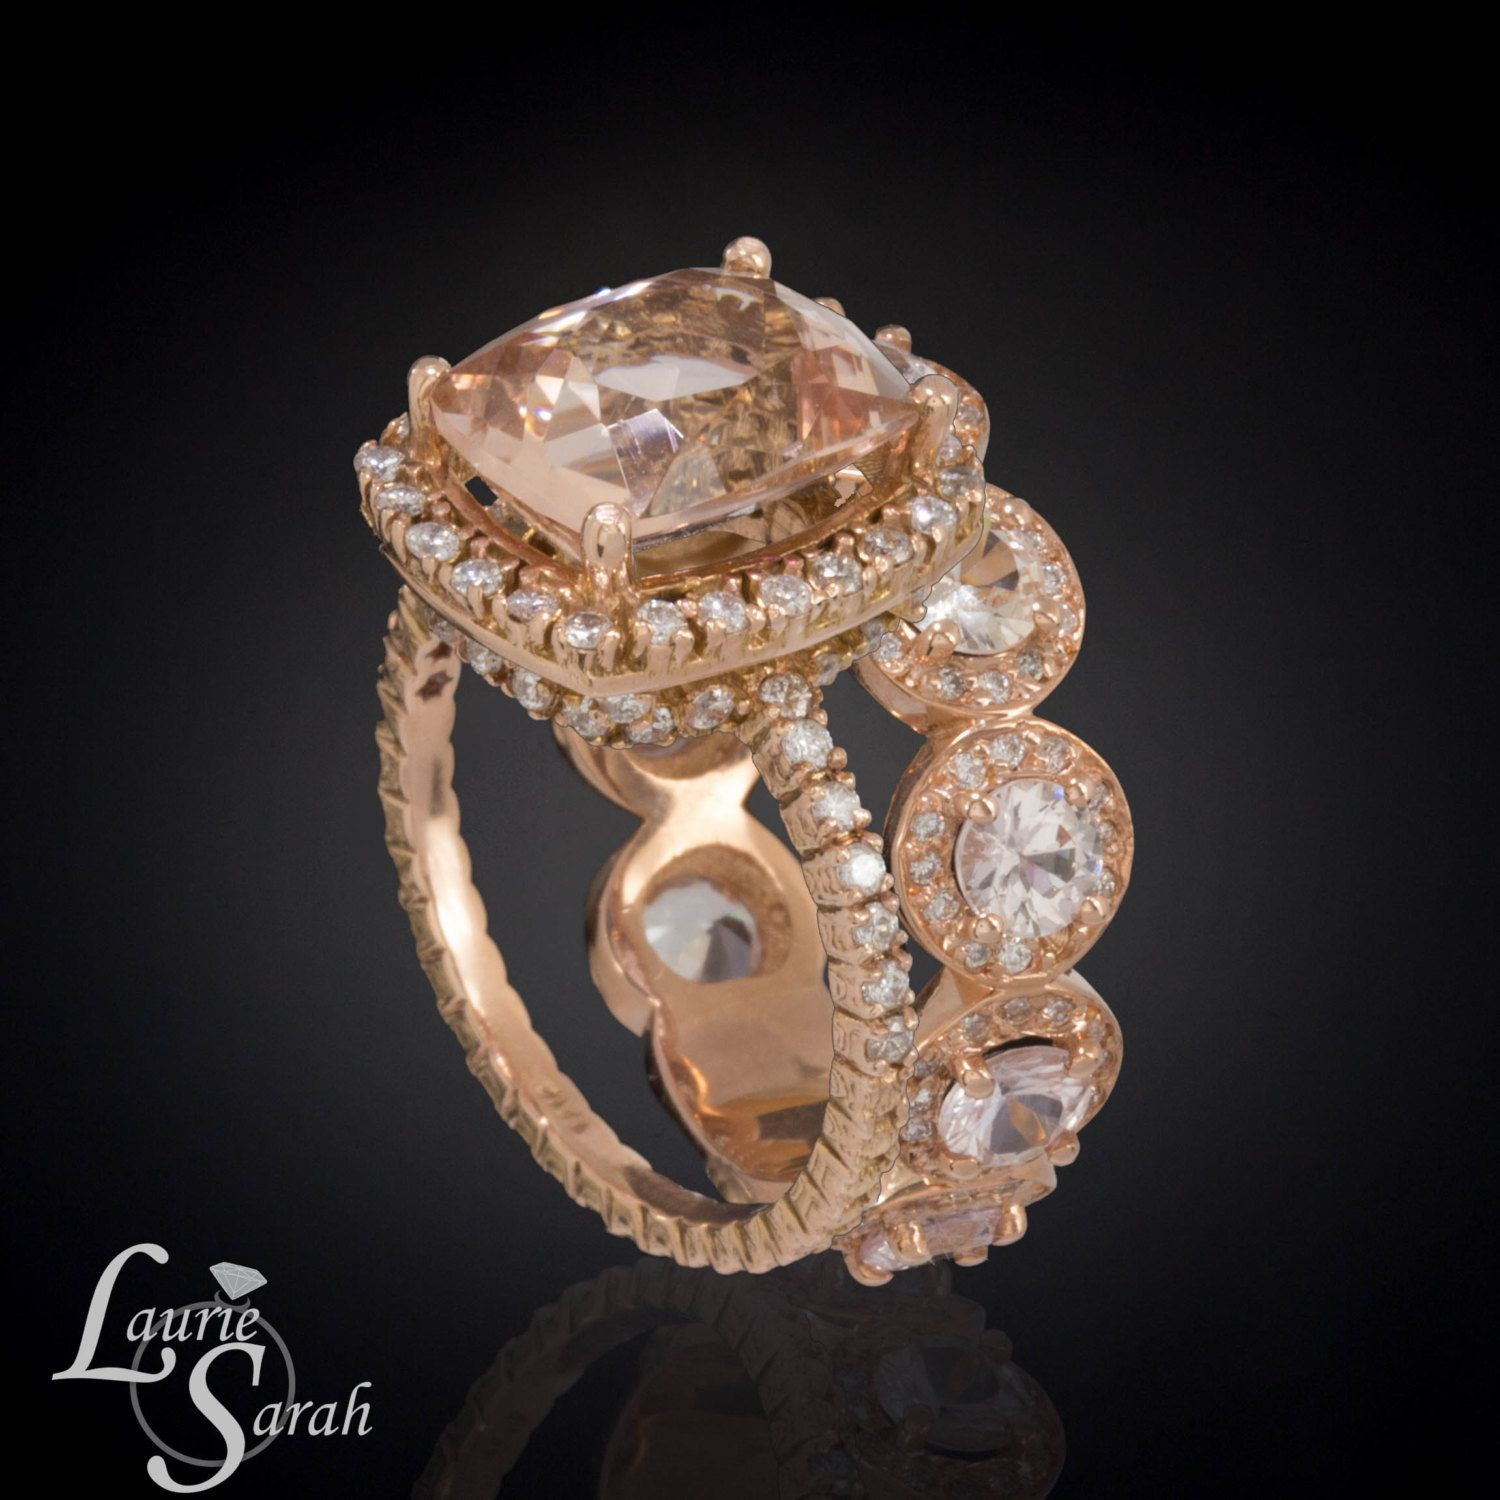 This Rose Gold Jewelry set features a Peach Morganite Engagement